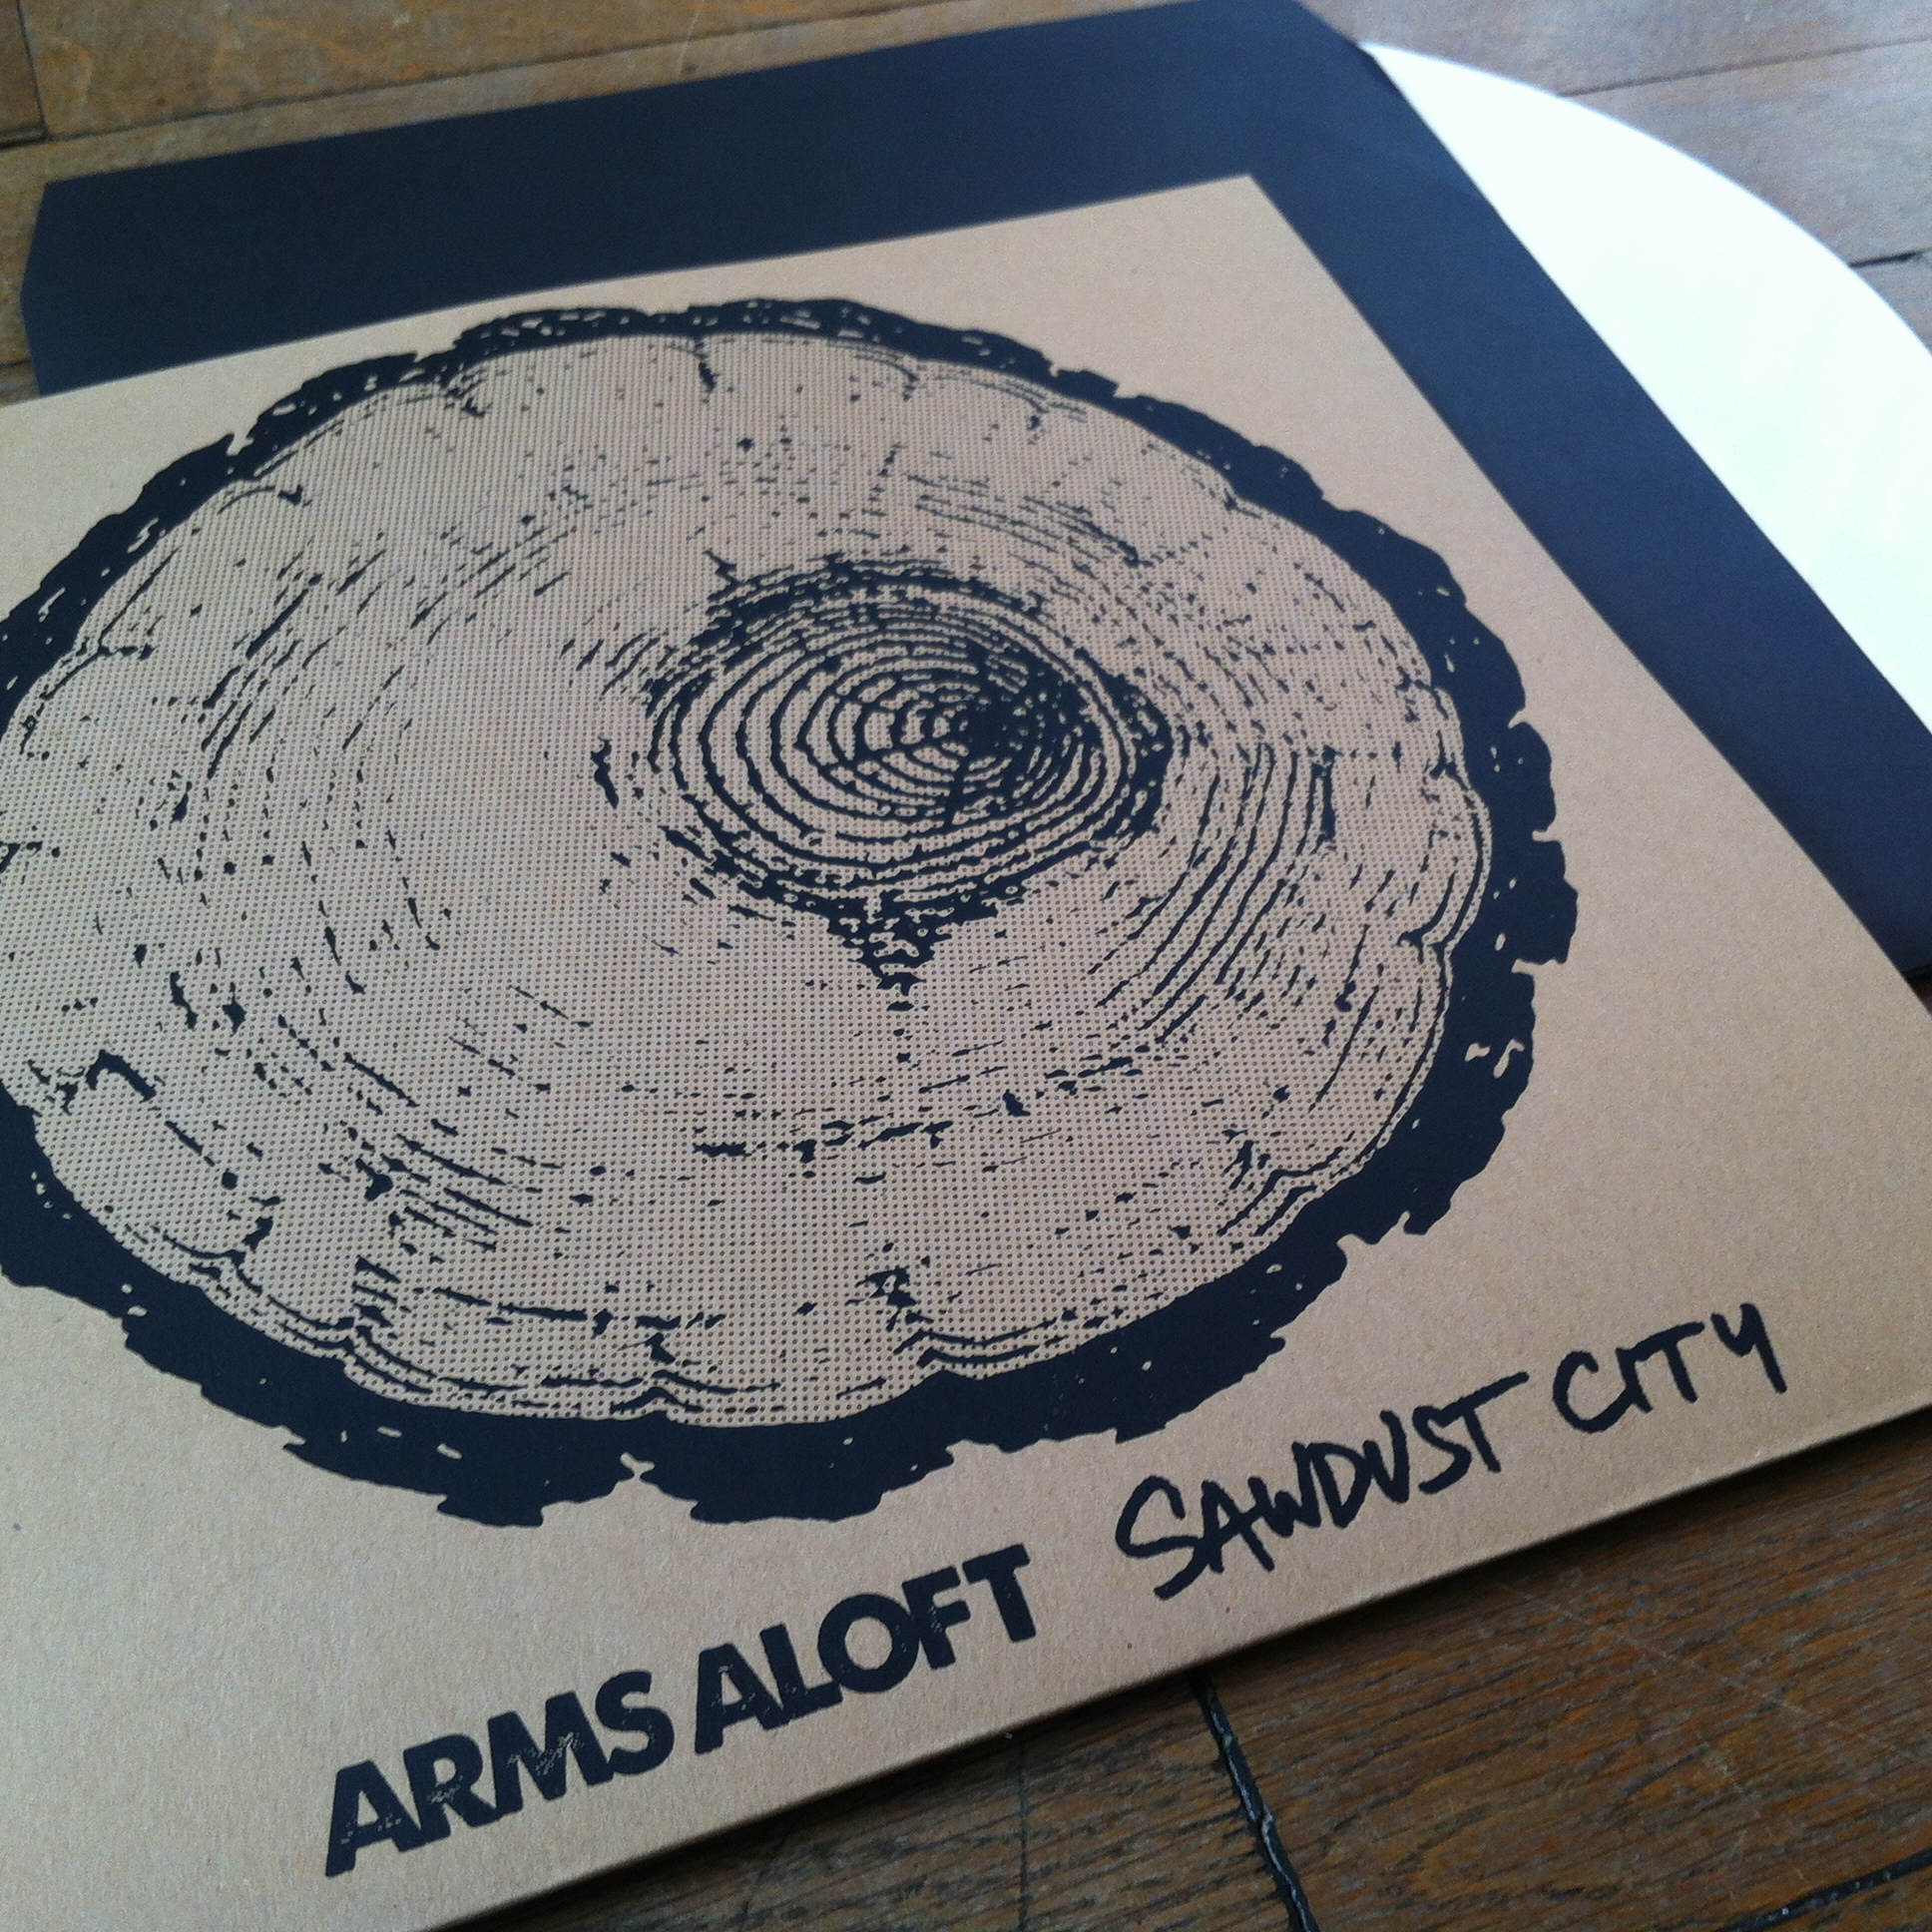 Arms Aloft - sawdust city